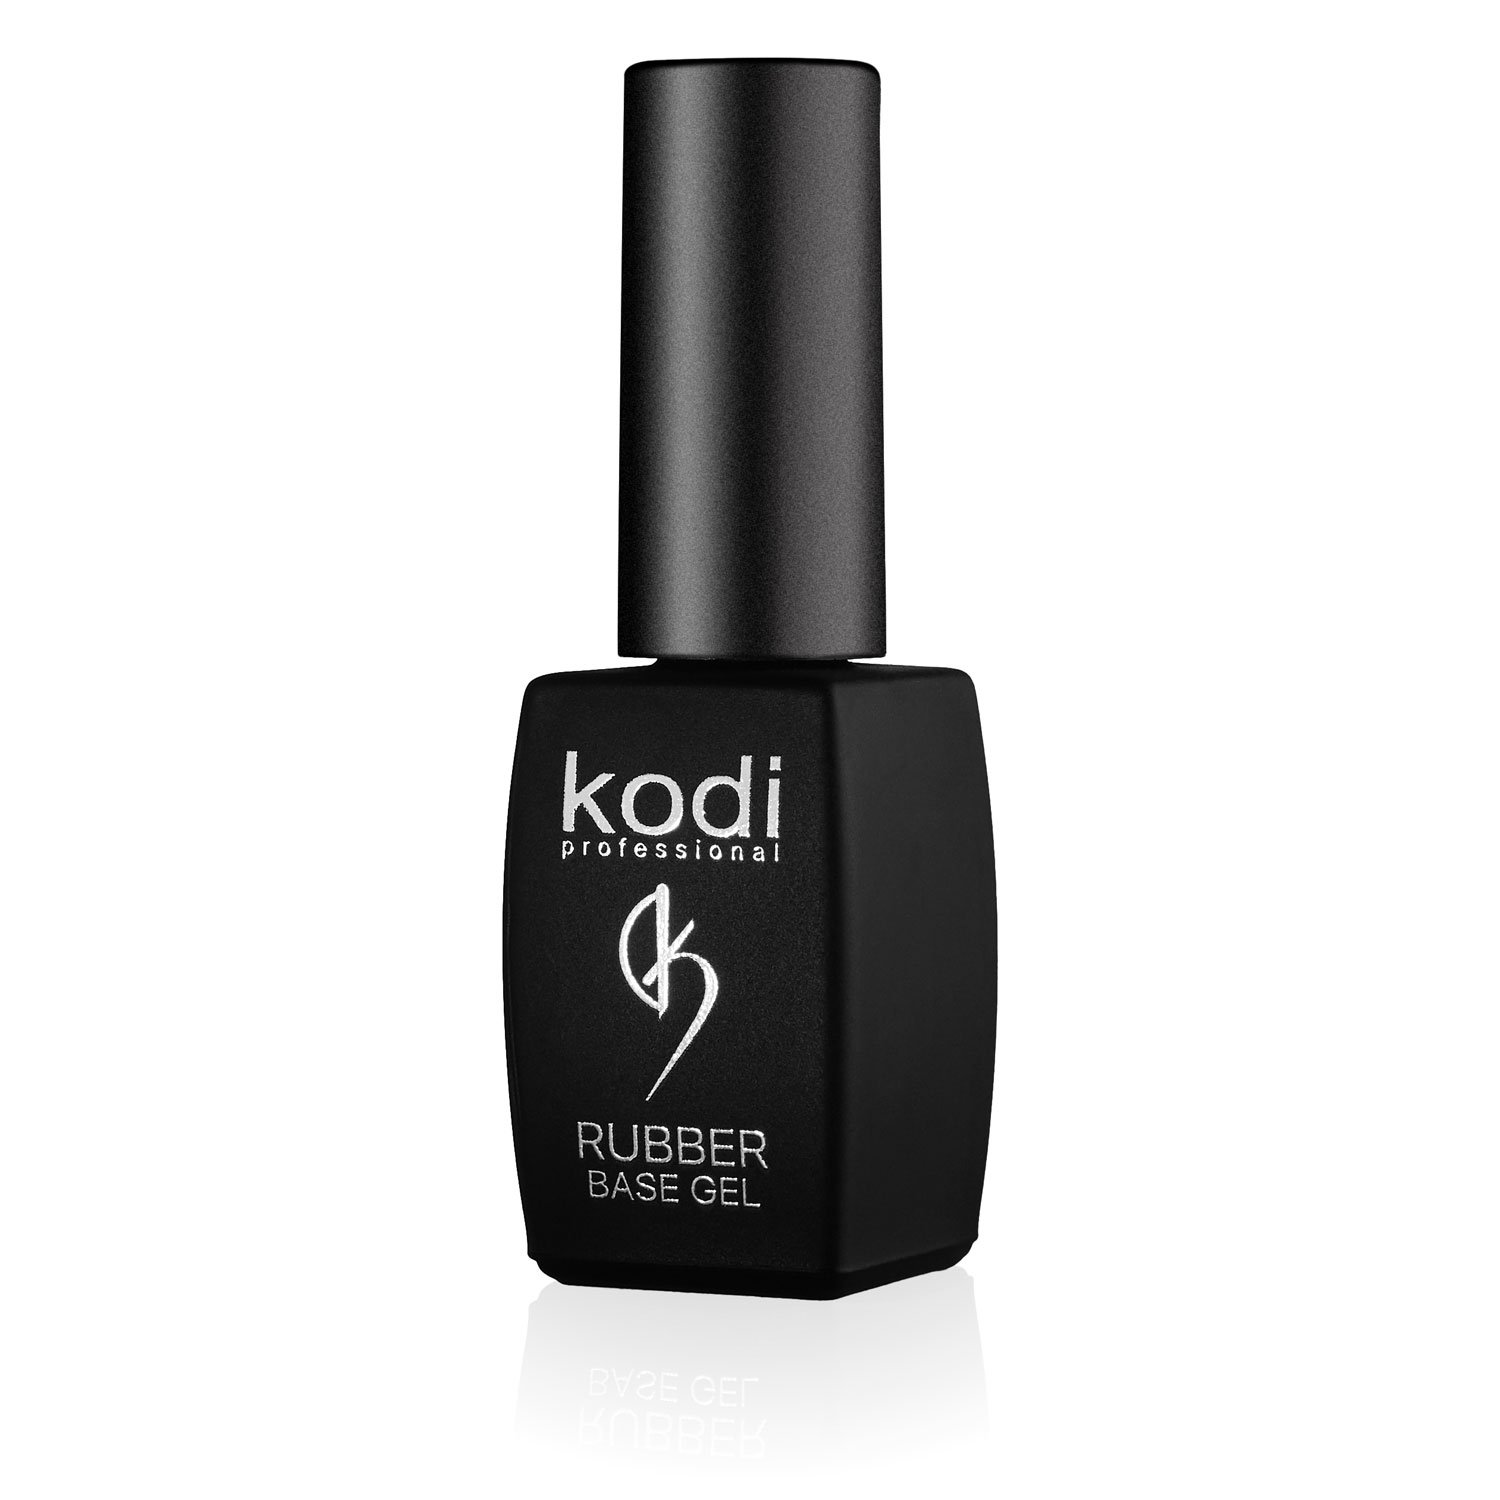 Professional Rubber Base Gel By Kodi | Soak Off, Polish Fingernails Coat Kit | For Long Lasting Nails Layer | Easy To Use, Non-Toxic & Scentless | Cure Under LED Or UV Lamp | 8ml 0.27 oz